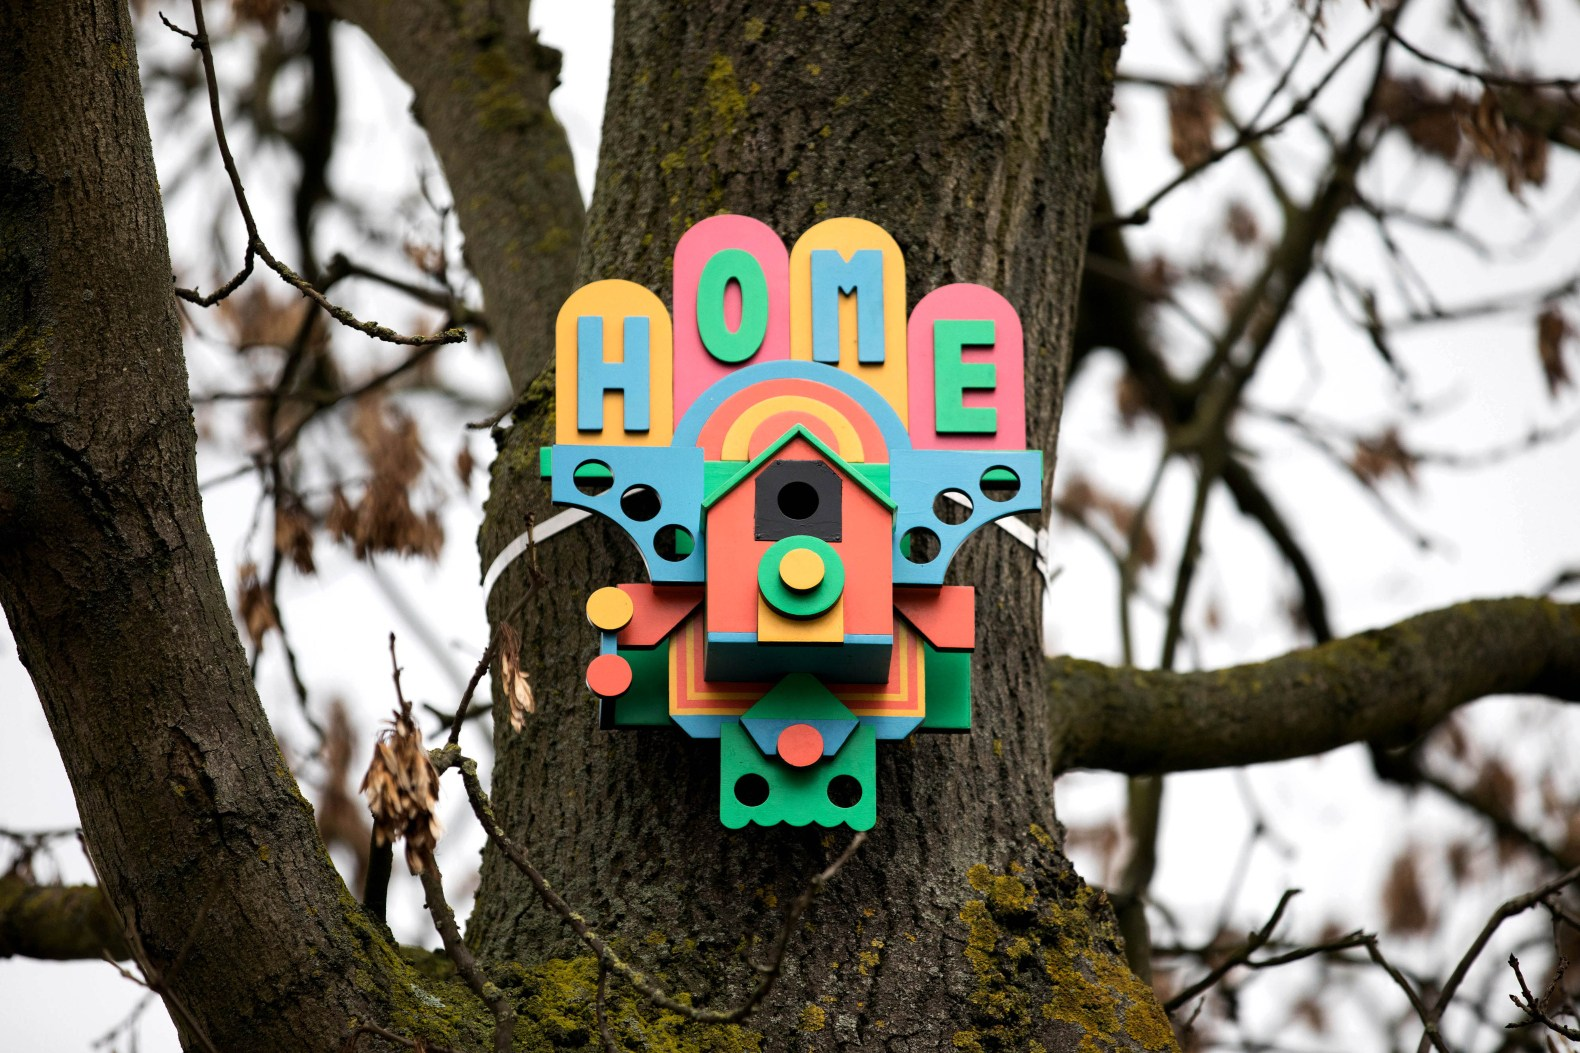 IKEA teams up with London artists to upcycle old furniture into funky abodes for birds, bees, and bats